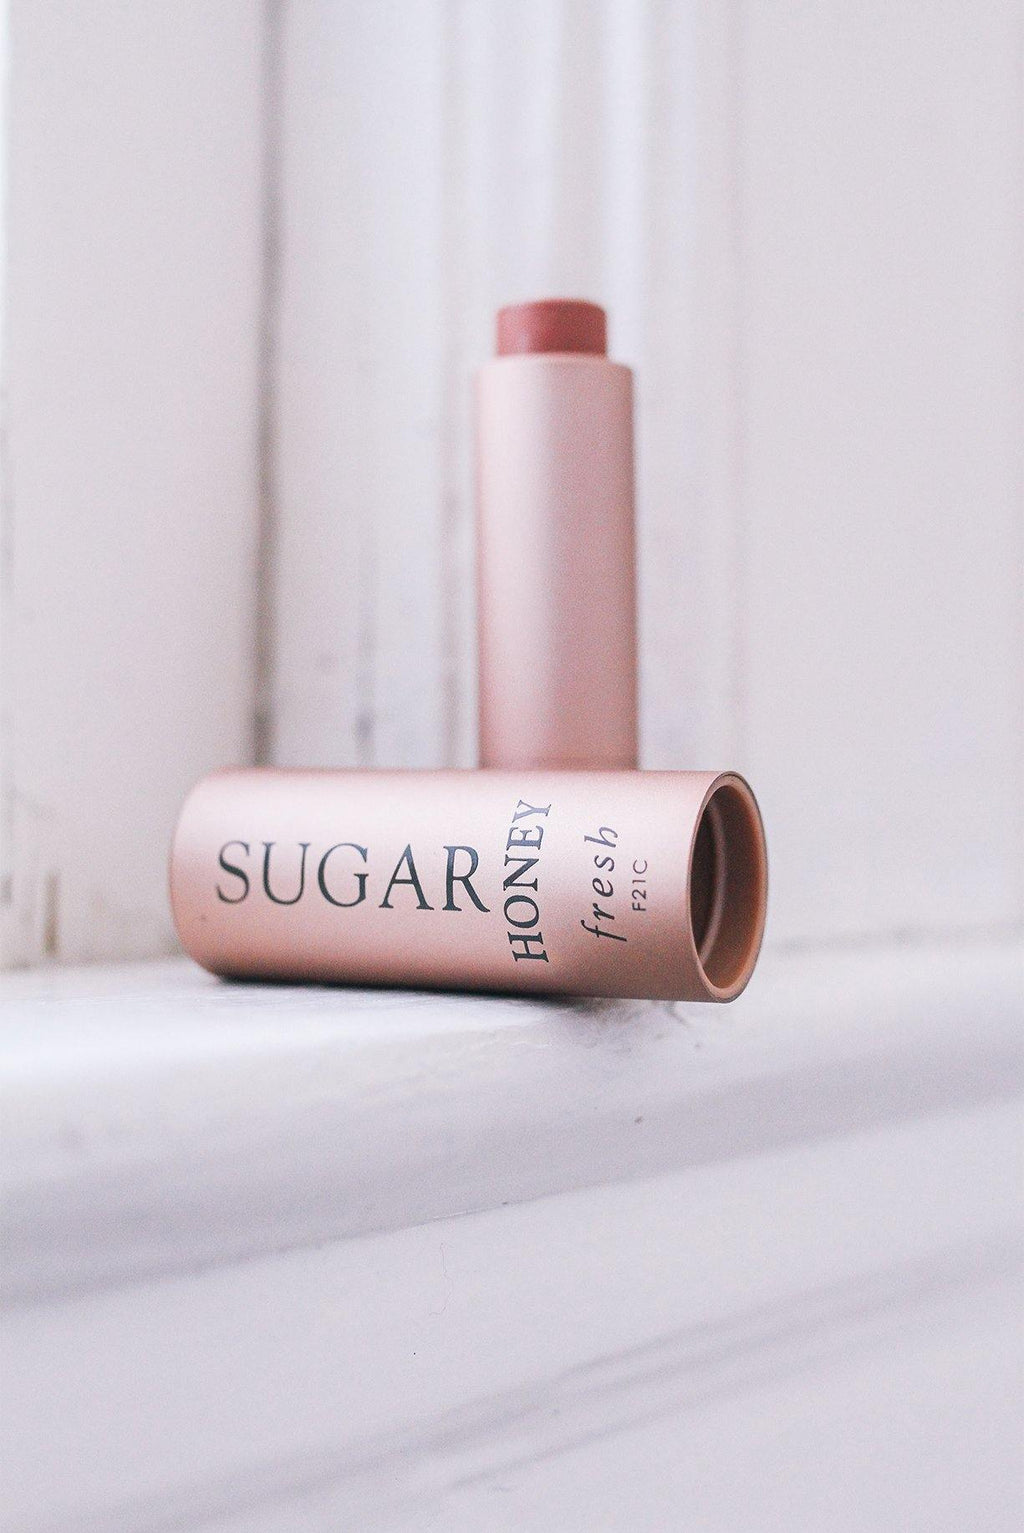 Fresh Sugar Lip Balm Sunscreen SPF 15